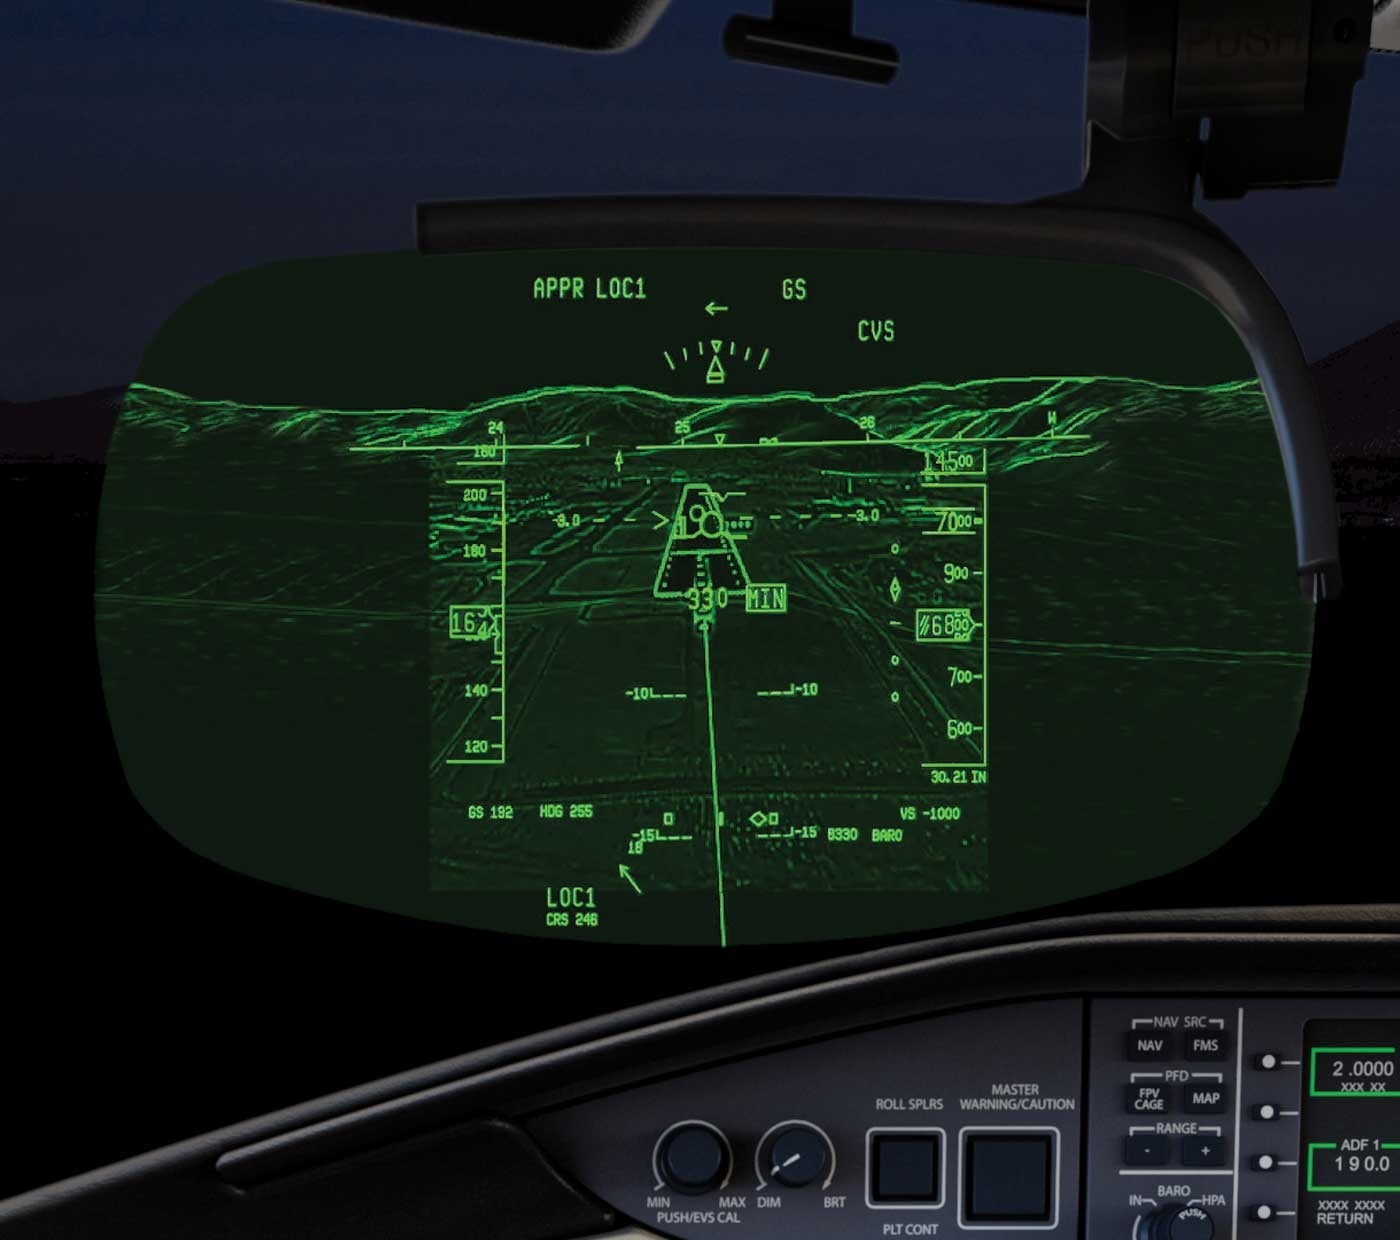 Global 6500 combined vision system